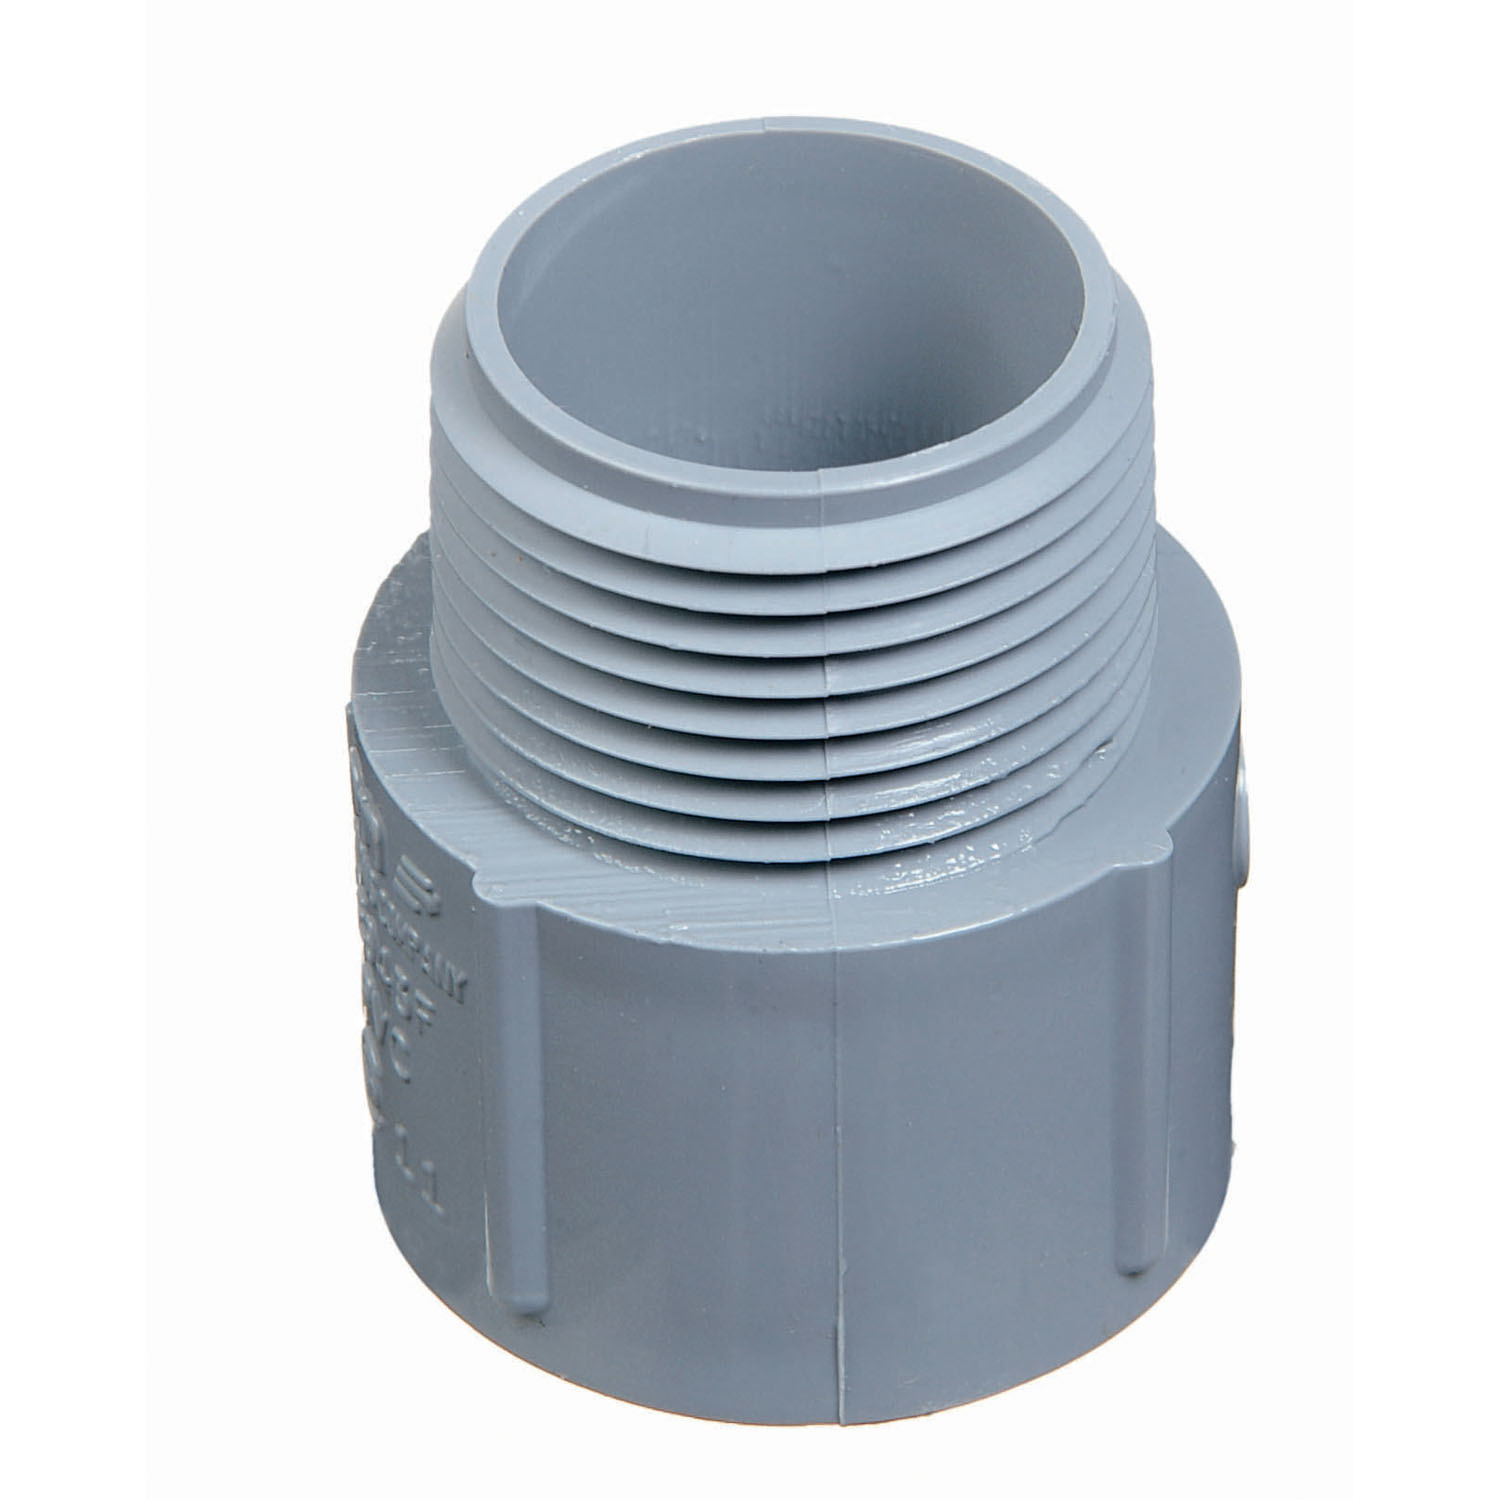 Pvc For Electric : Electrical fittings metal pvc cord nmb conduit